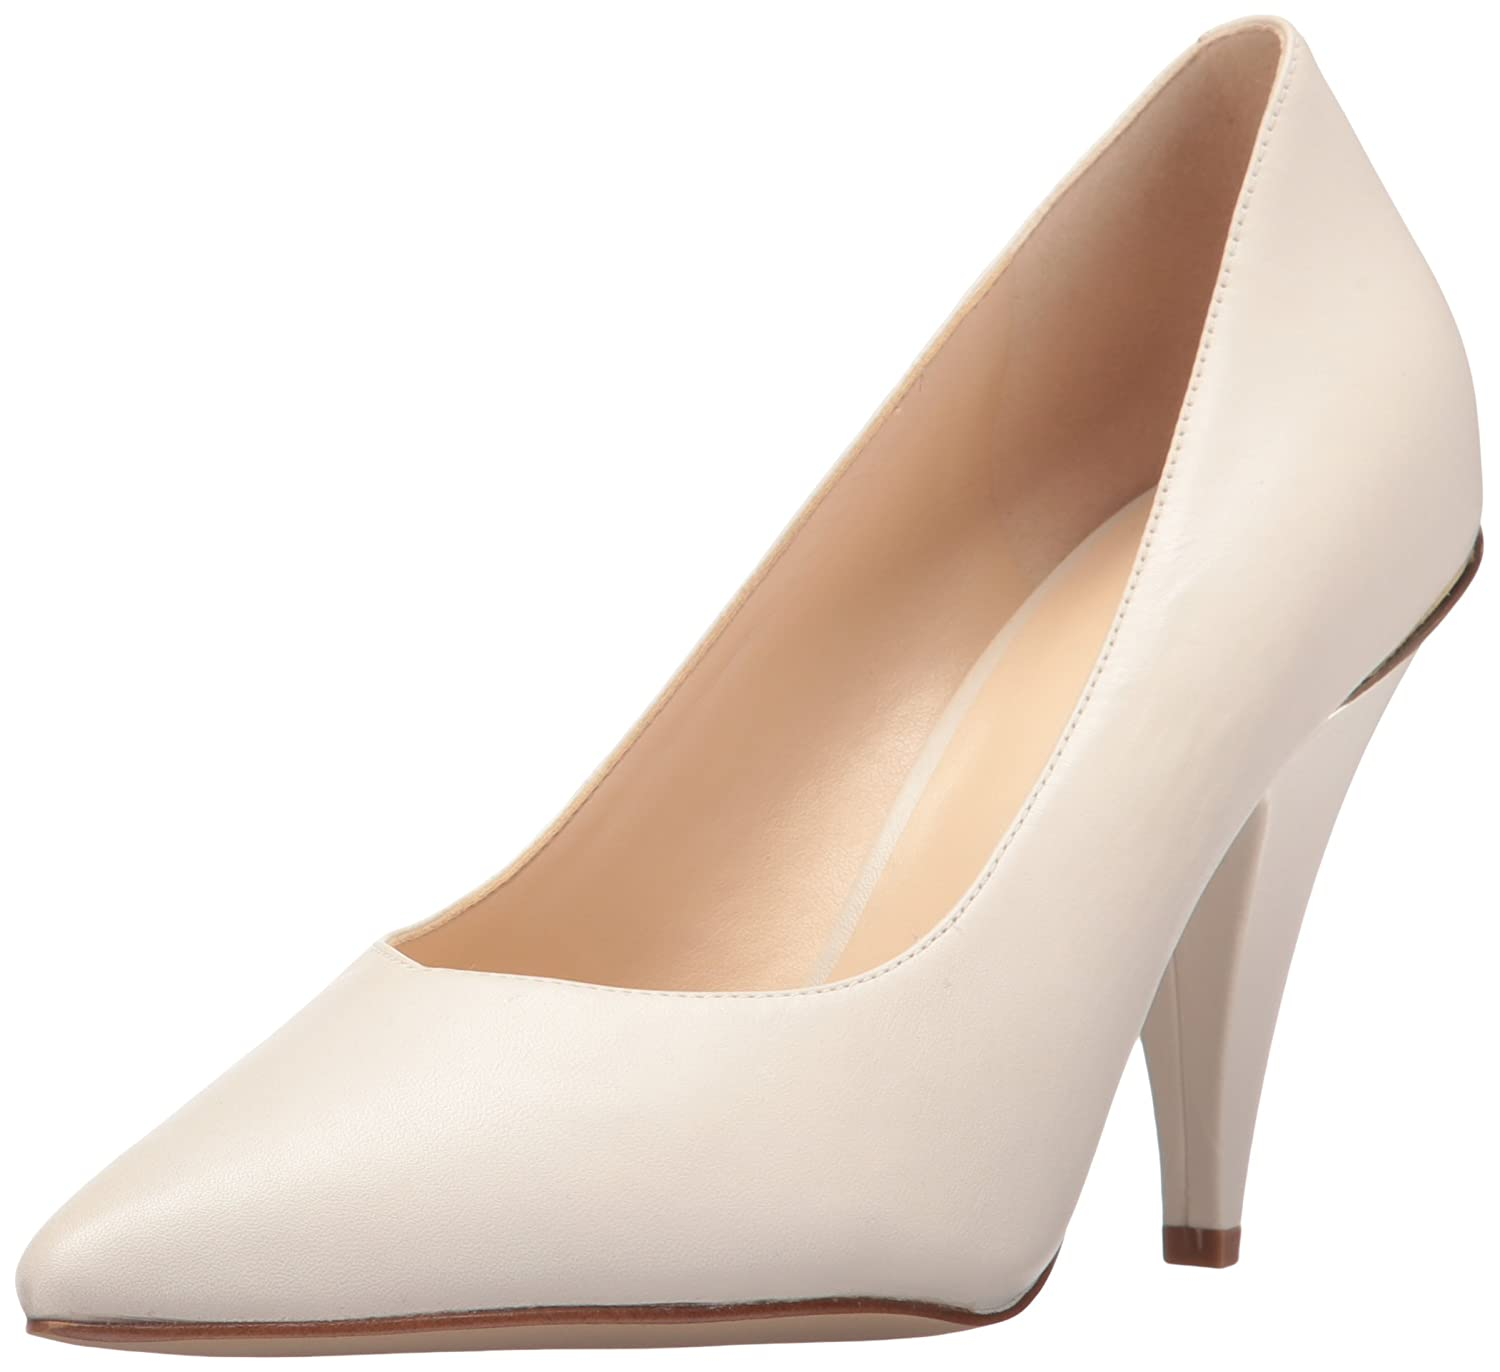 Nine West Women's Whistles Leather Pump B01NCIOE8S 10.5 B(M) US|Off White